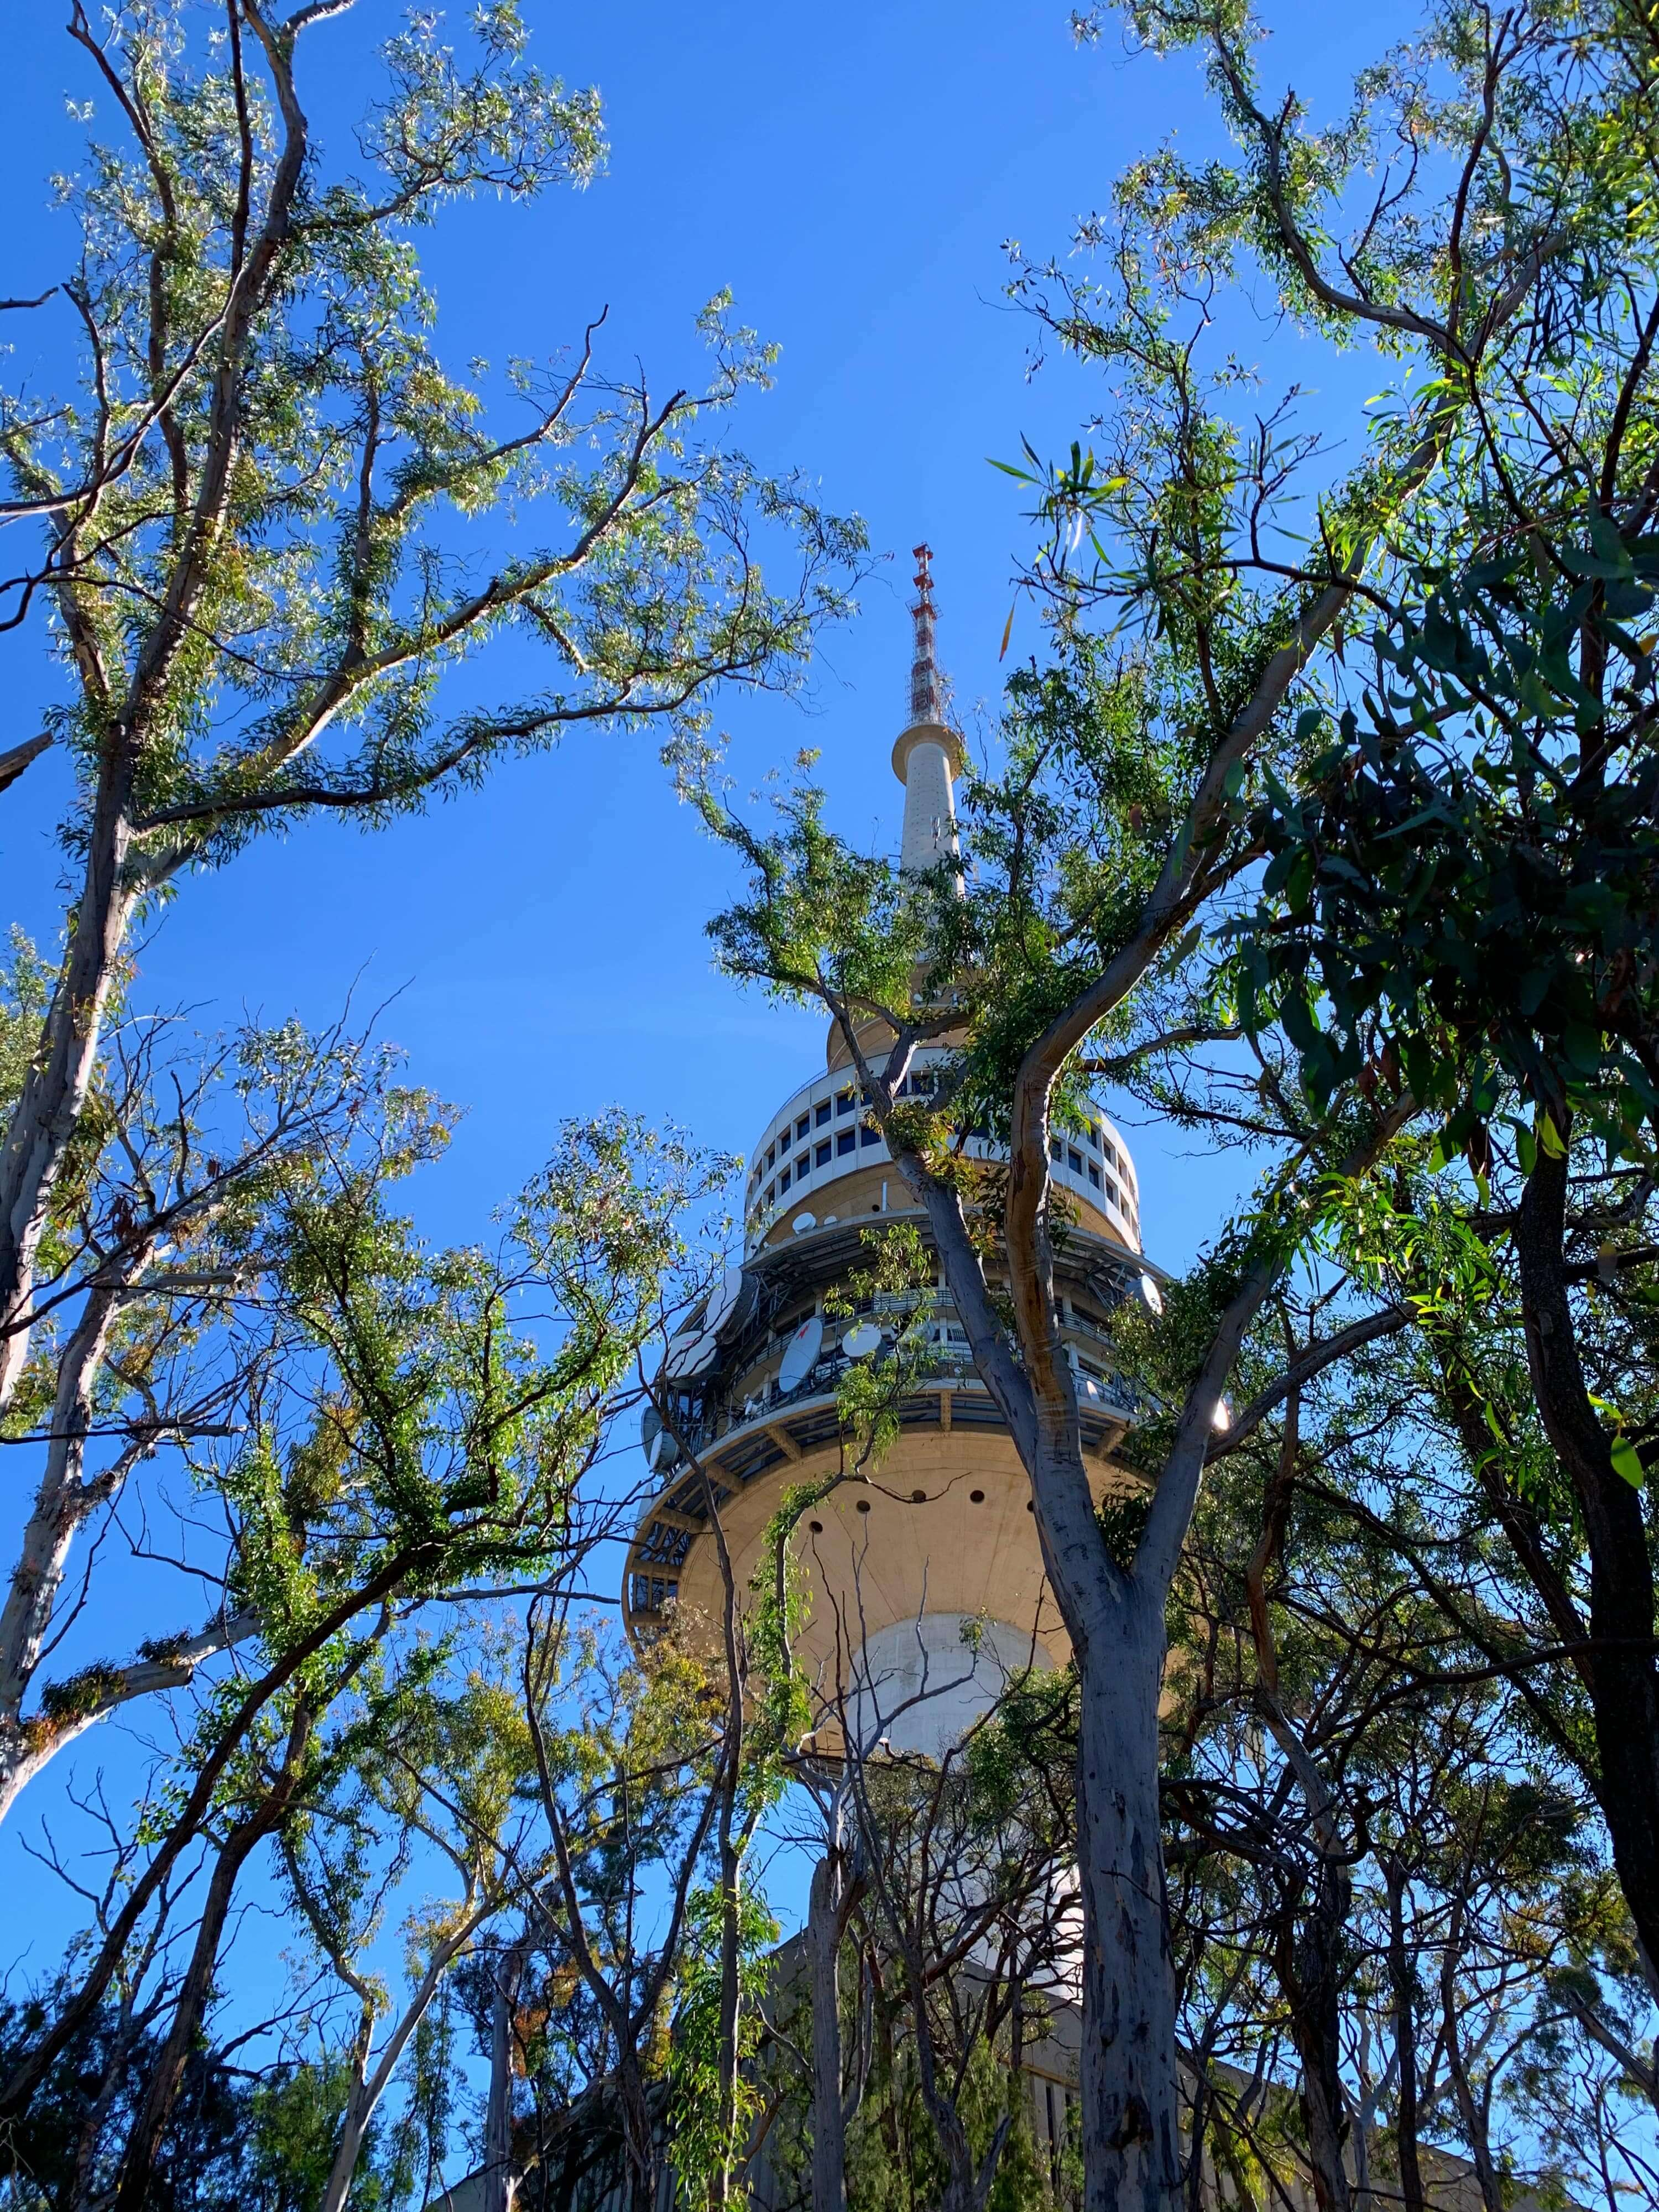 Canberra's iconic Telstra Tower, as seen from below, through a thin eucalypt tree grove